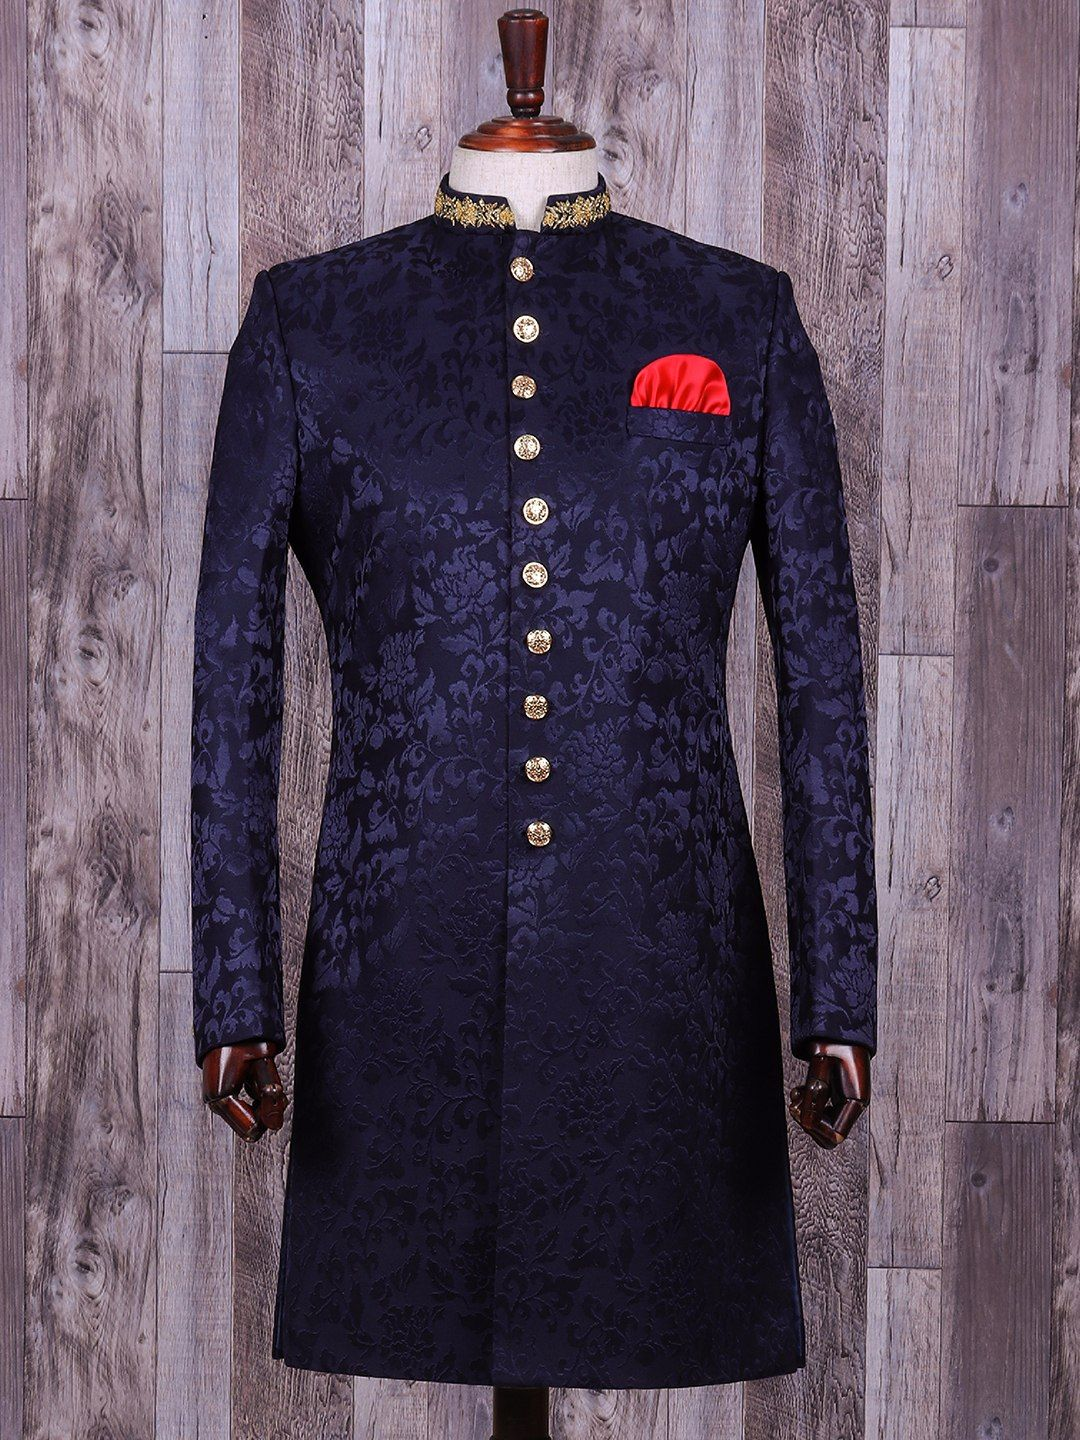 536cffc88d Shop Navy terry rayon classy indo western online from G3fashion India. Brand  - G3, Product code - G3-MIW2204, Price - 9950, Color - Navy, Fabric - Silk,